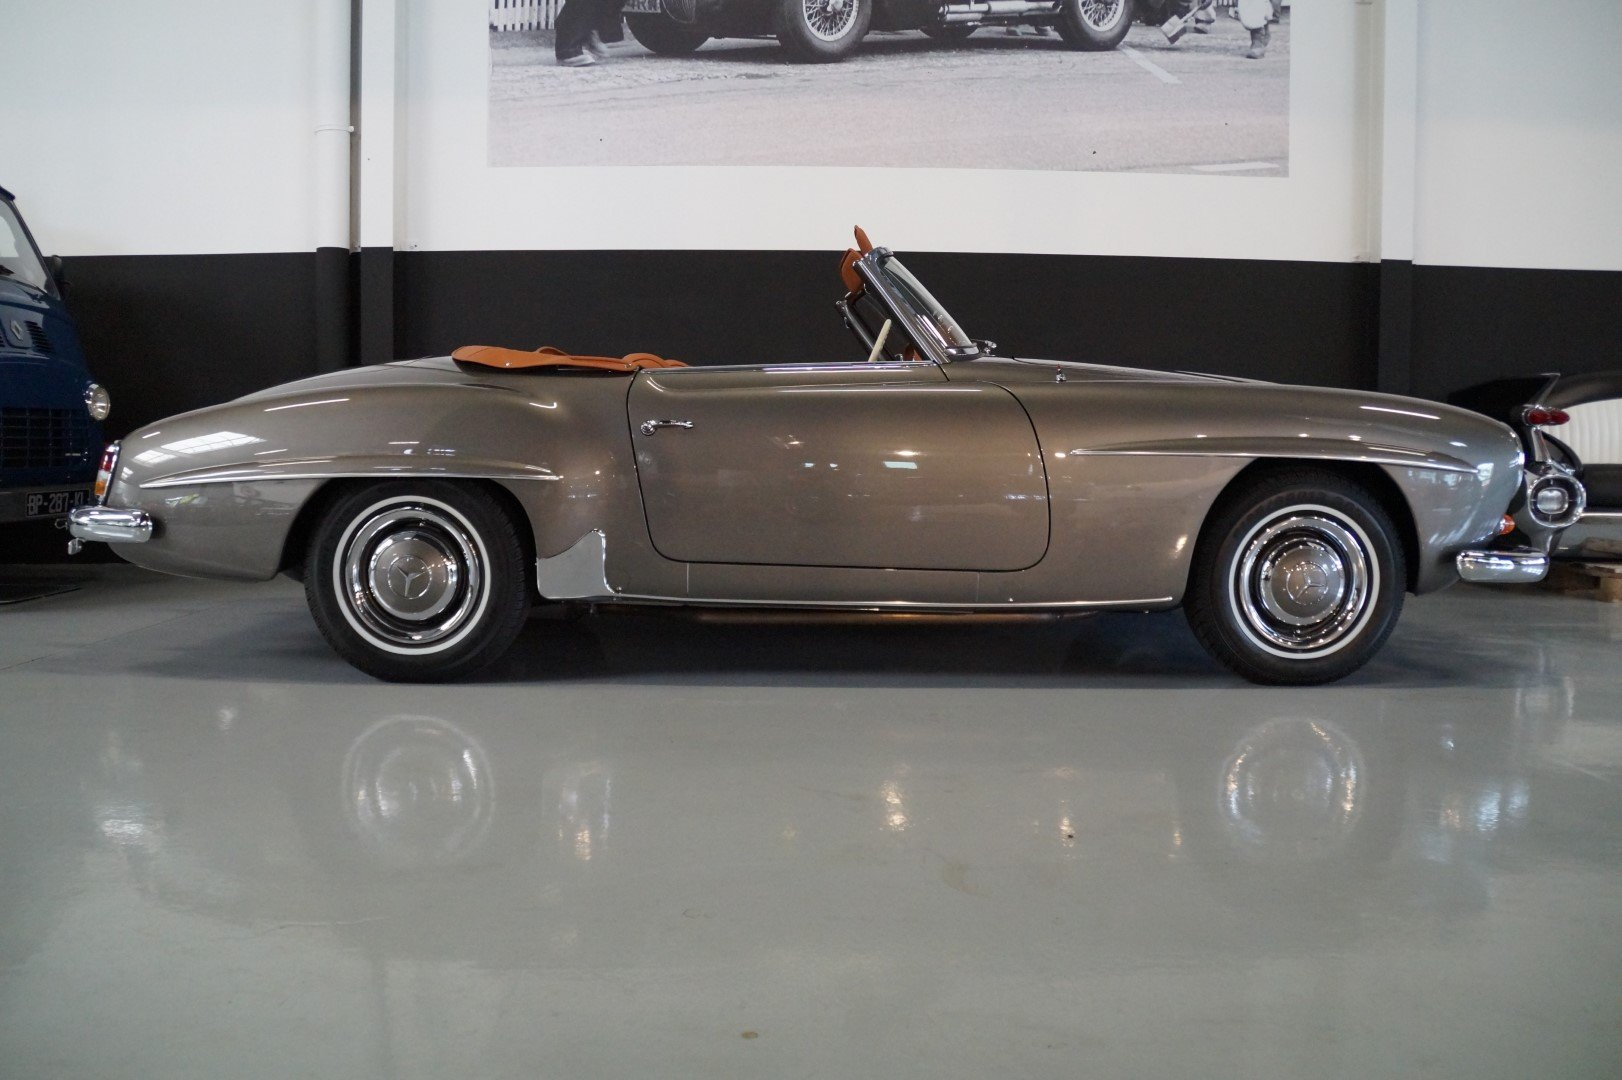 MERCEDES-BENZ 190 SL 190SL Concourse restored (1957) For Sale (picture 2 of 6)